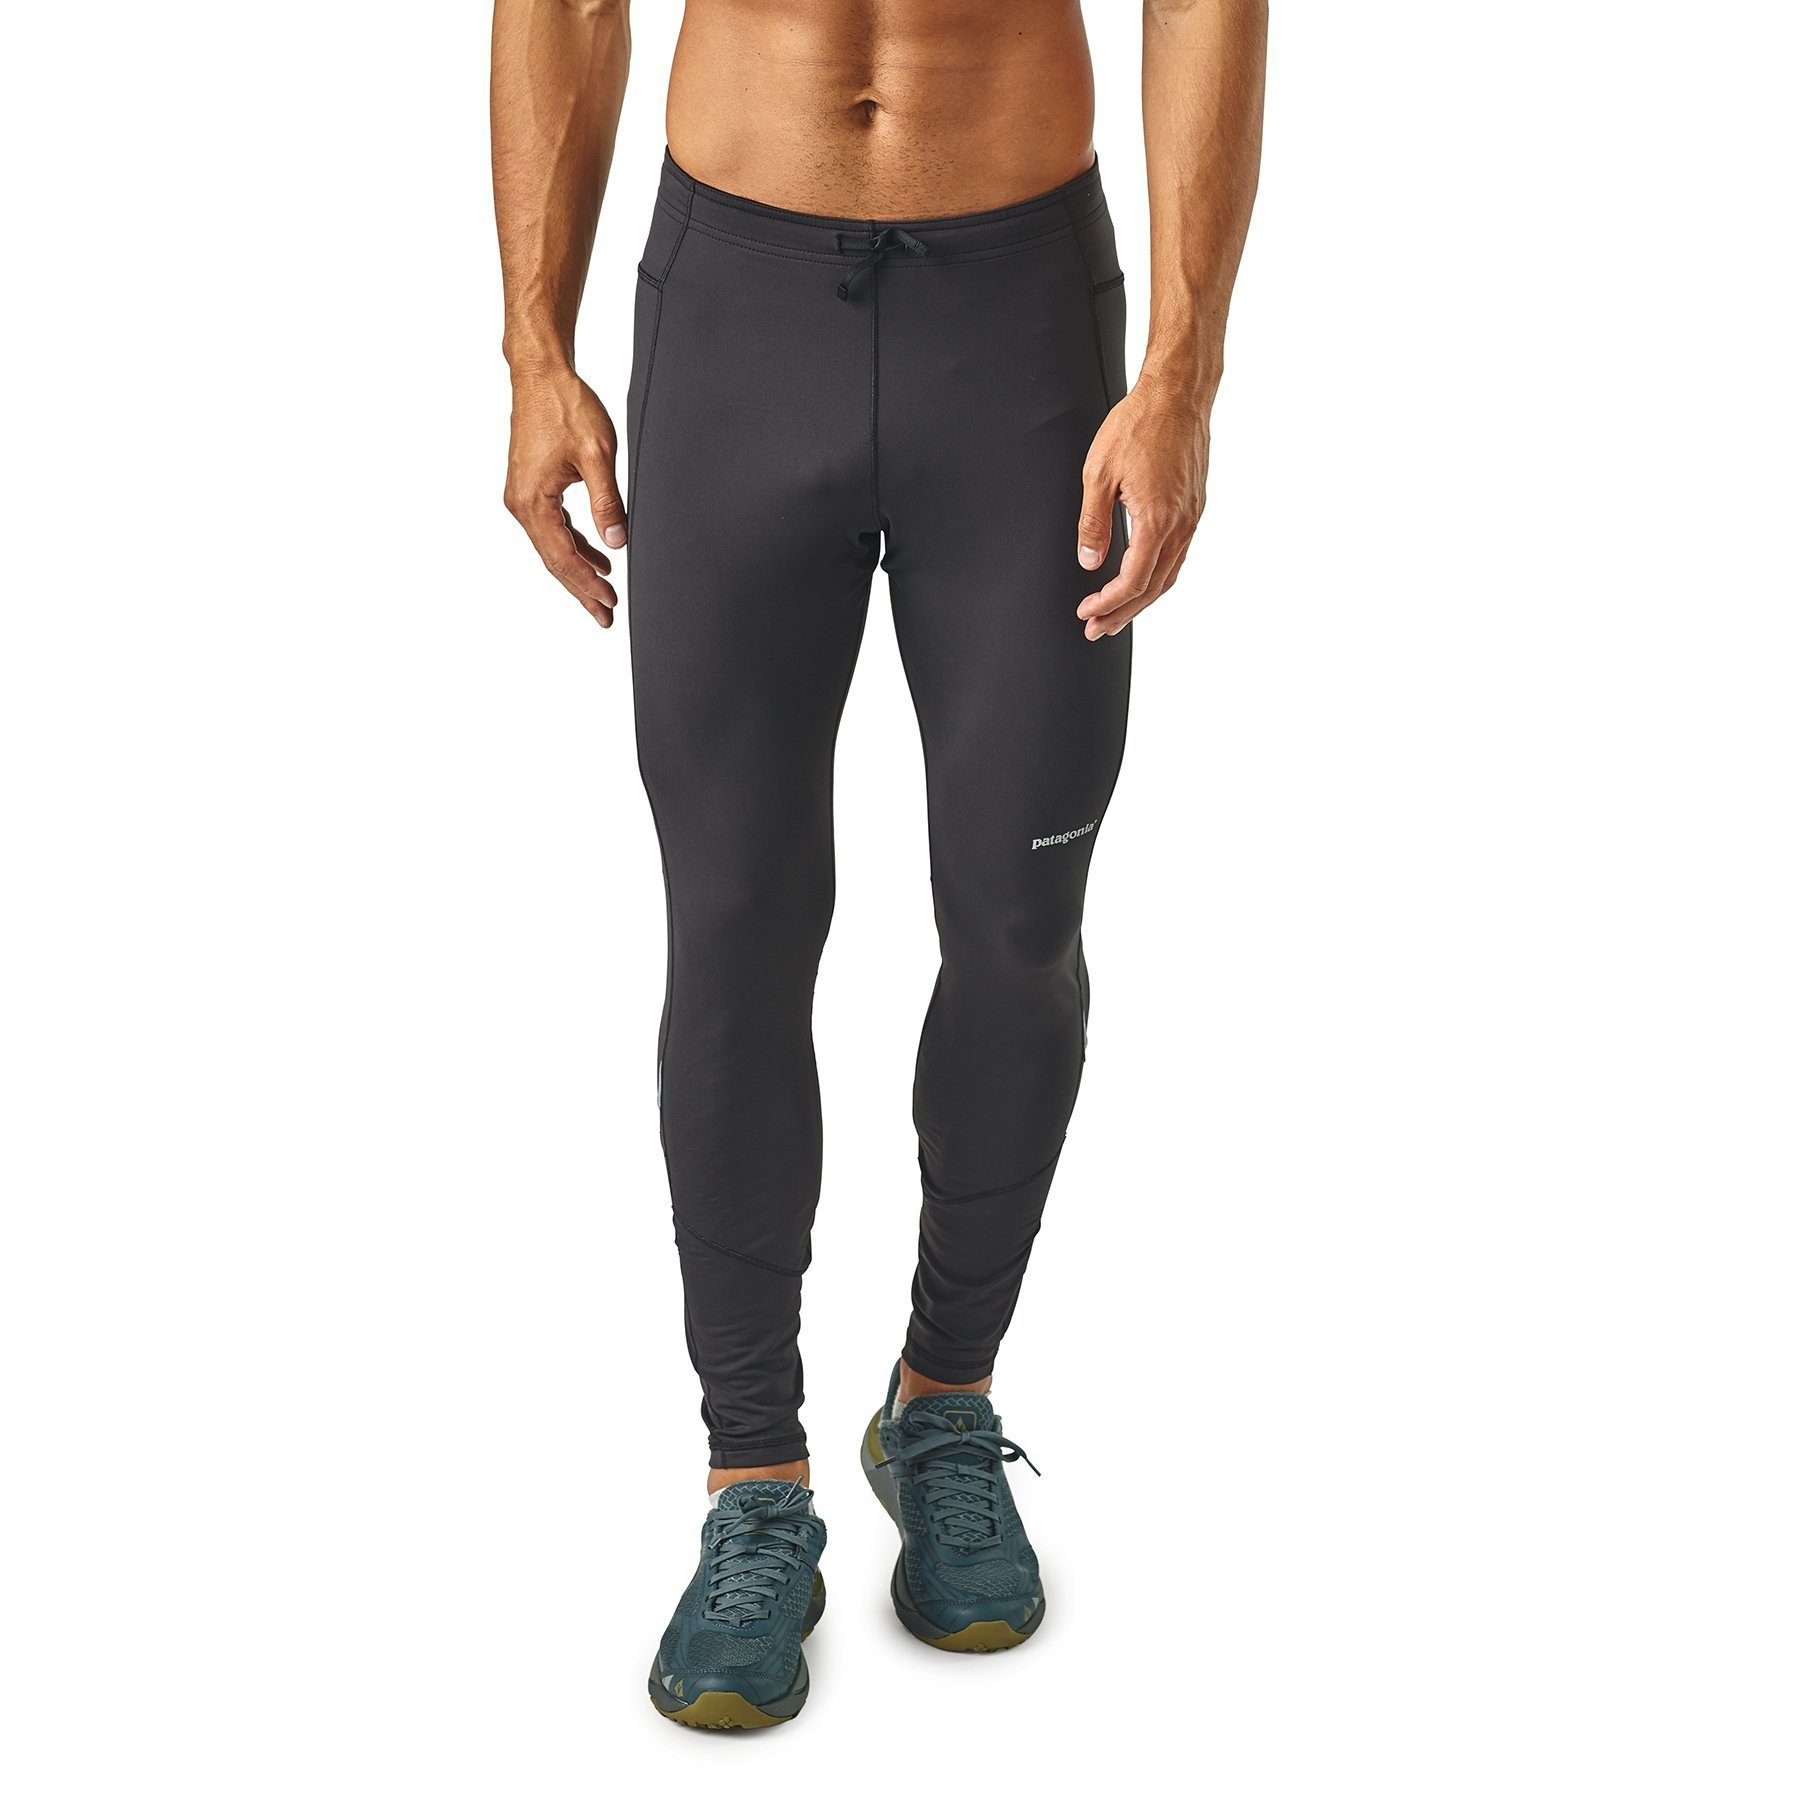 Patagonia - Men's Peak Mission Winter Running Tights - Black - Recycled Nylon - Weekendbee - sustainable sportswear